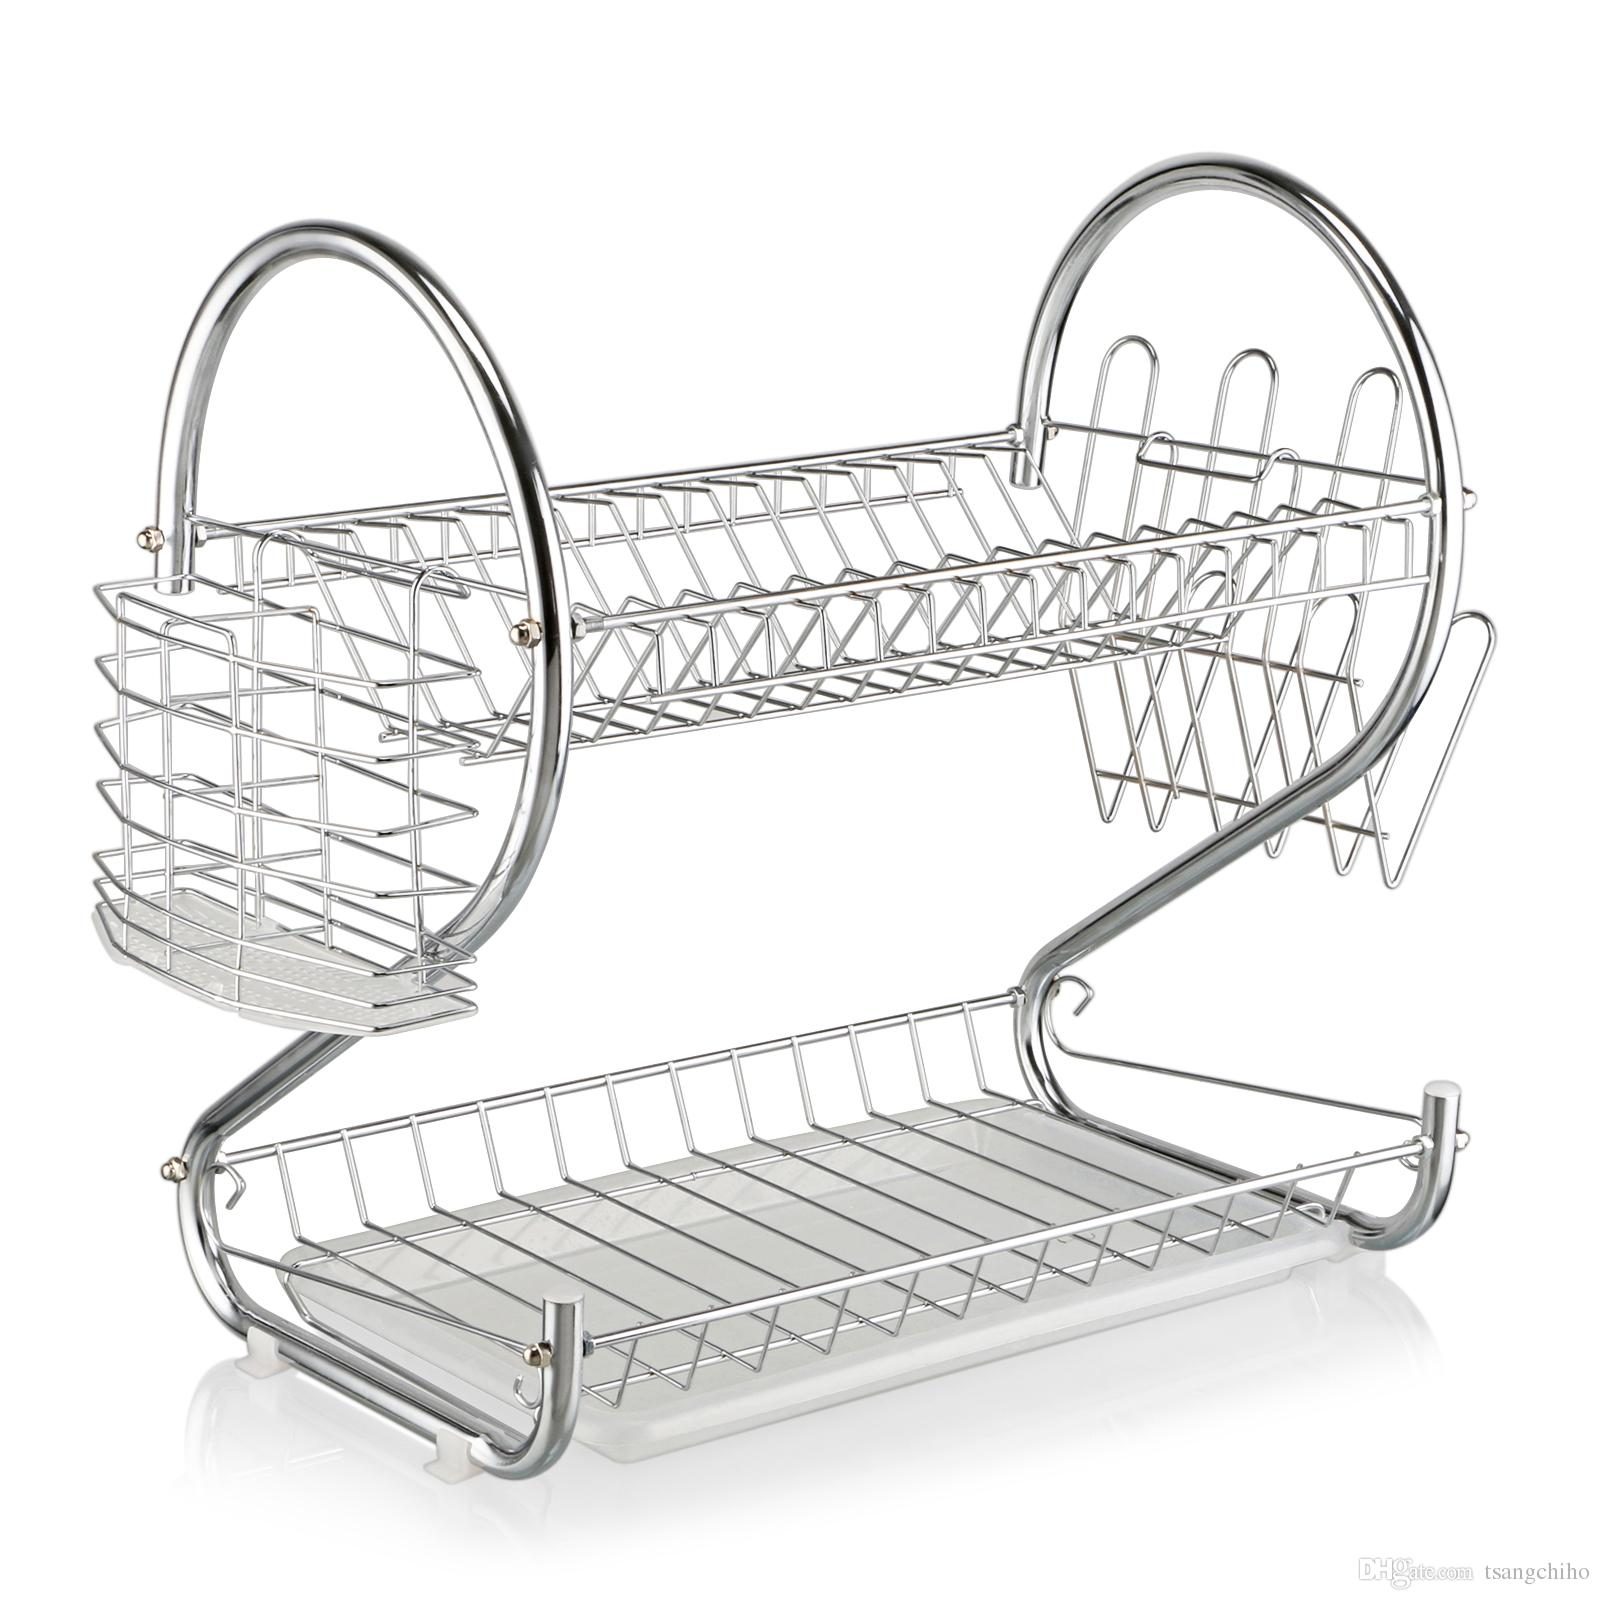 kitchen drying rack task lighting 2019 brand new 2 layer dish cup drainer dryer tray cutlery holder organizer free shipping